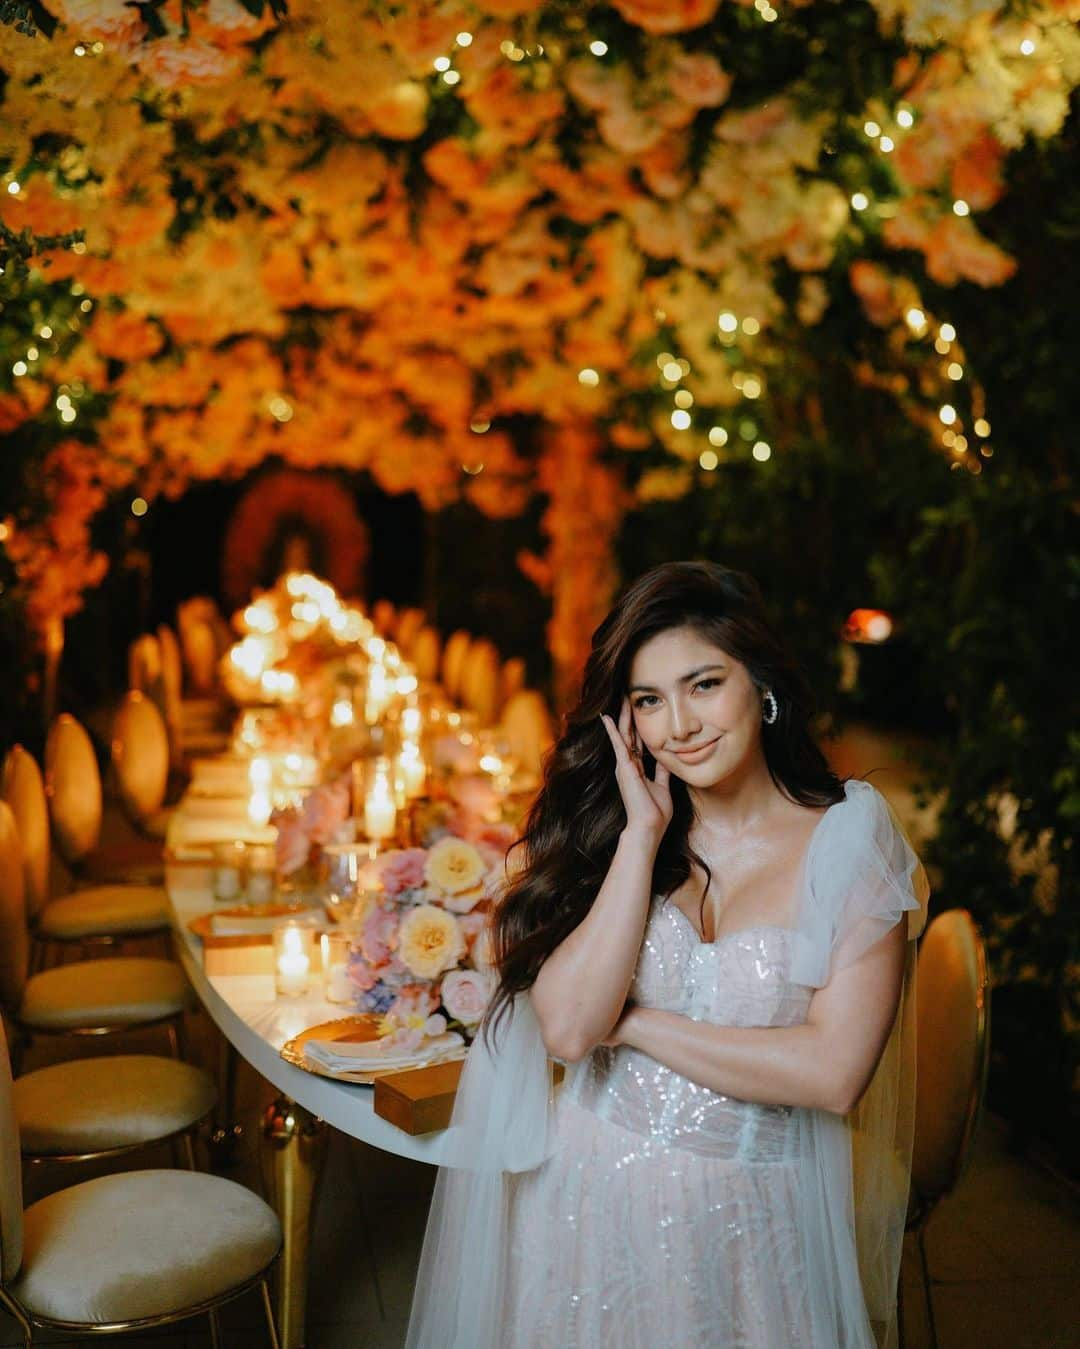 Jane de Leon's 22nd birthday dinner